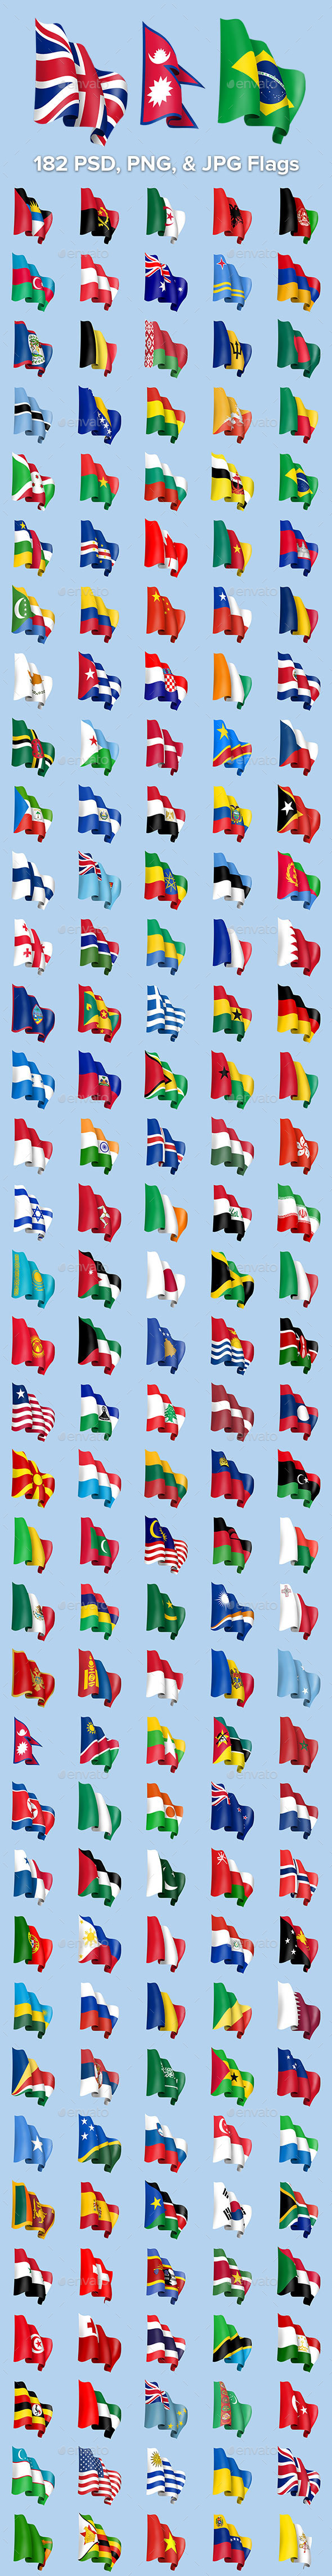 GraphicRiver 182 Waving Country Flags 9239362